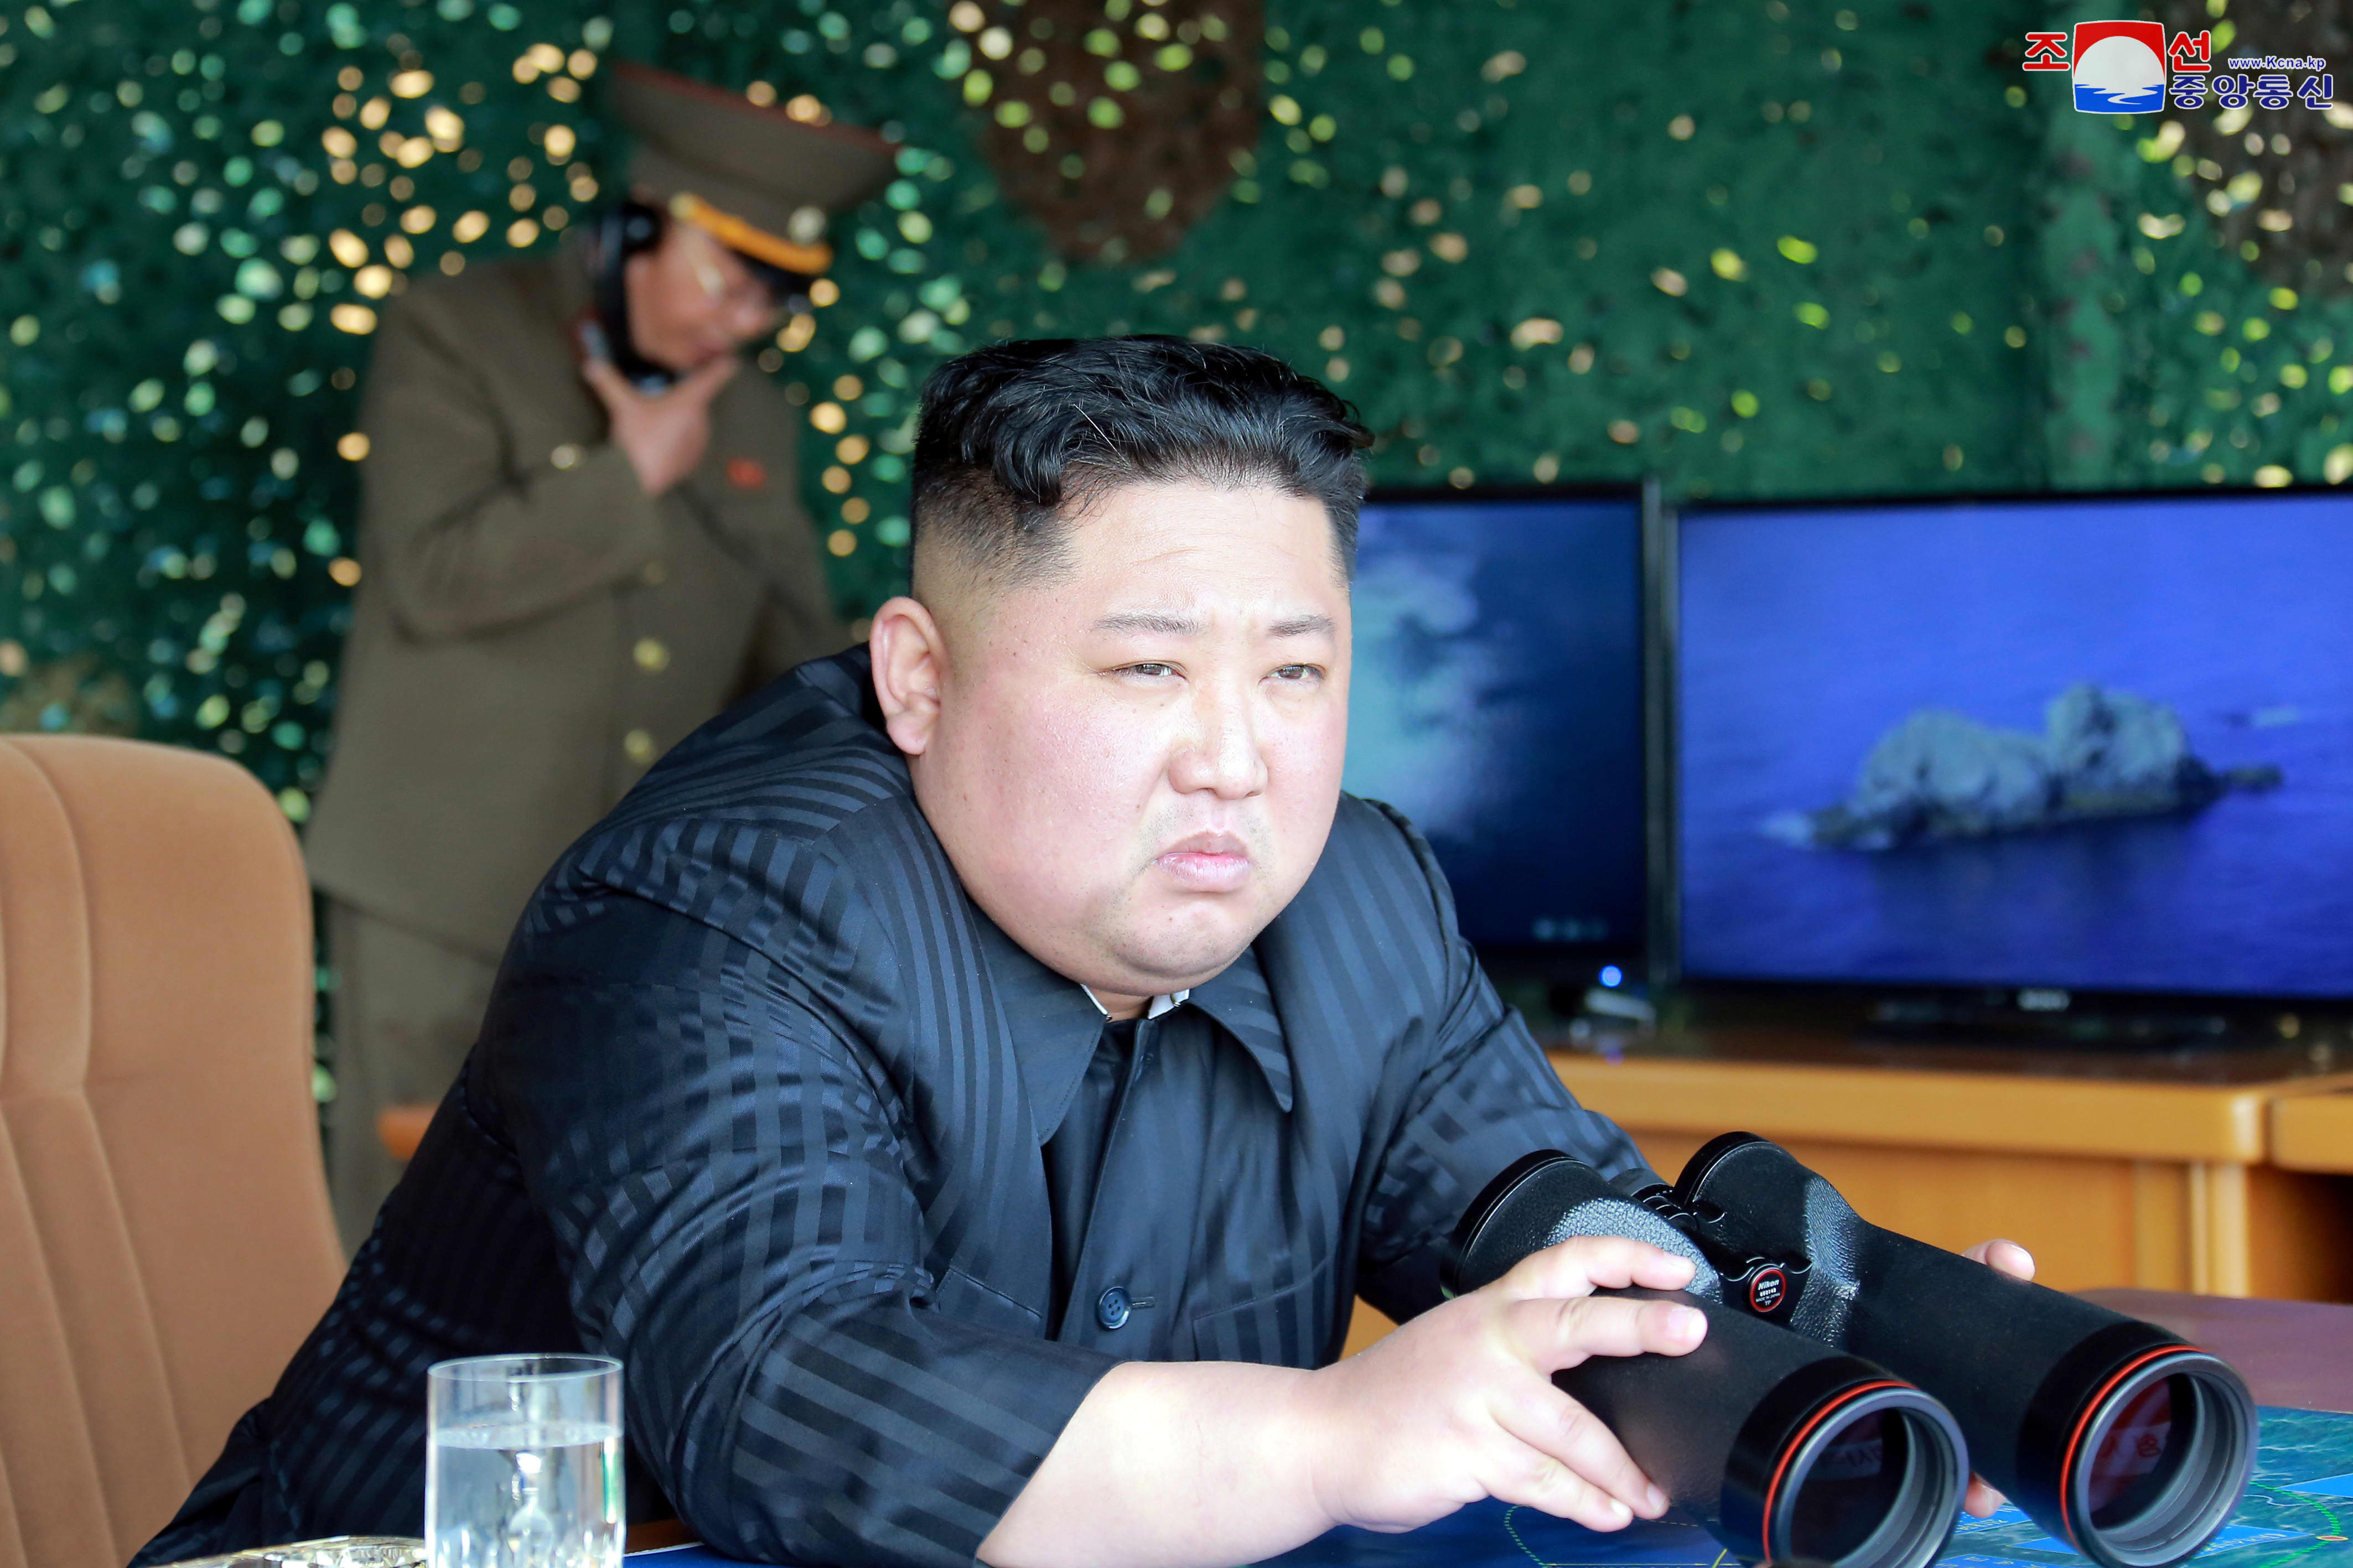 North Korea's Kim Jong Un says missile launches are warning to US, South Korea over drill